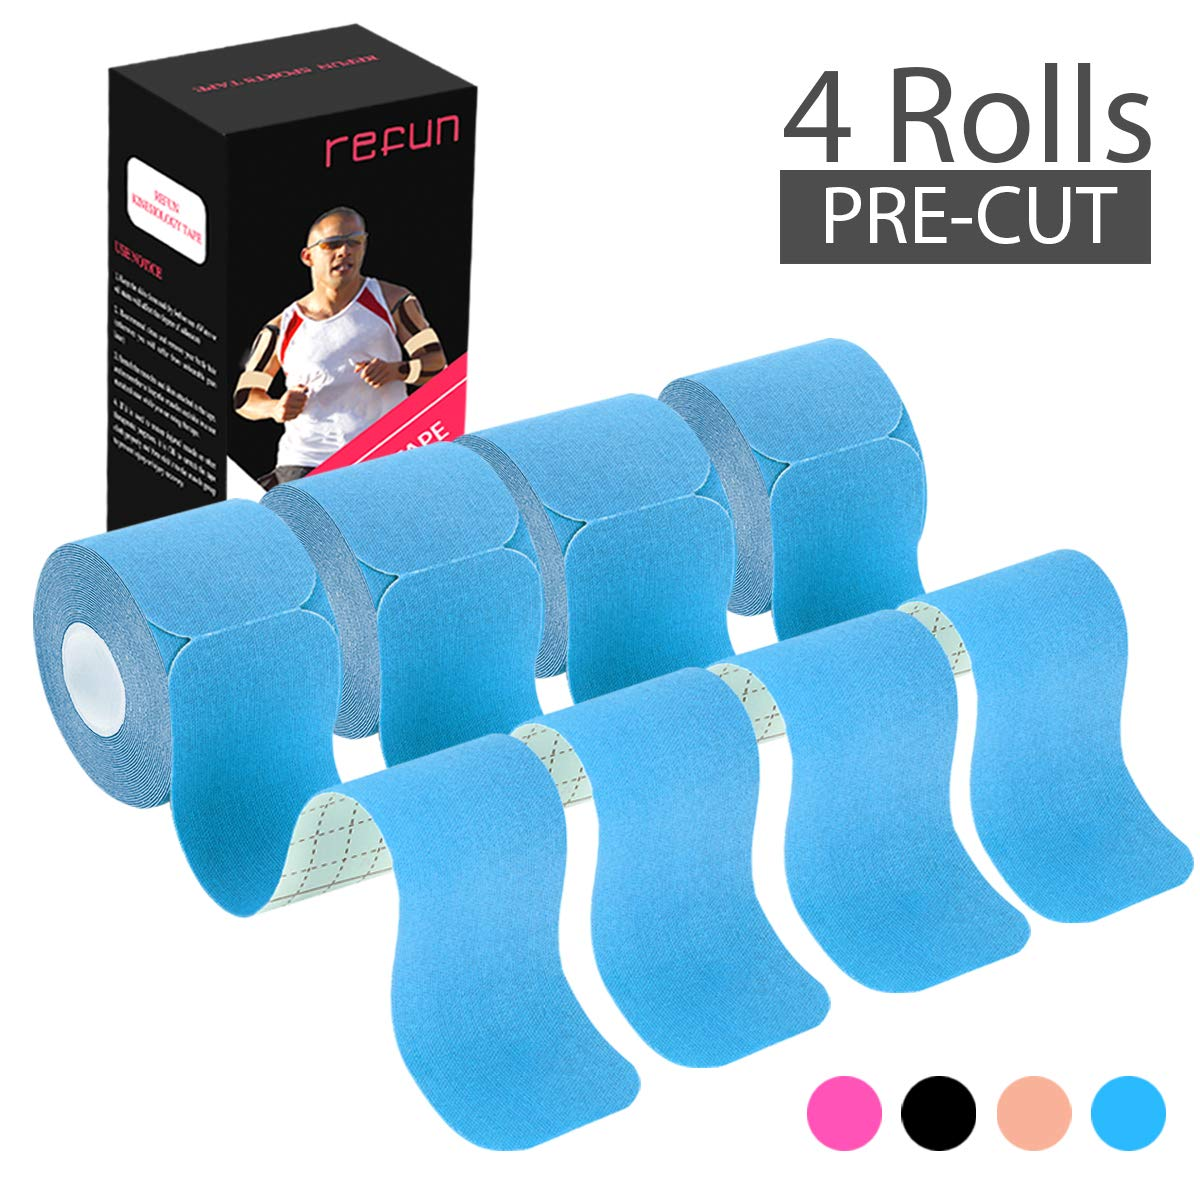 REFUN Kinesiology Tape Precut (4 Rolls Pack), Elastic Therapeutic Sports Tape for Knee Shoulder and Elbow, Pain Relief, Waterproof, Latex Free, 2'' x 16.5 feet Per Roll, 20 Precut 10 Inch Strips